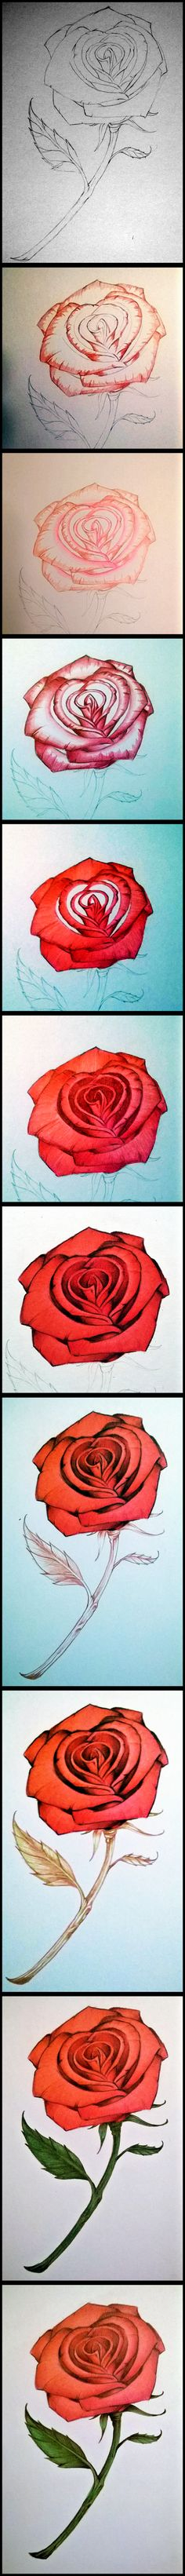 #Art #Artlessons #Free #Howtodraw #Rose #DerricktheArtist #ColoredPencils #RoseArt Learn how to draw and color a lovely Red Rose using Colored Pencils by Artist Derrick Rathgeber. Click on the Image to be directed to step by step instructions. http://derricktheartist.blogspot.com/2014/03/how-to-draw-rose-with-colored-pencils.html